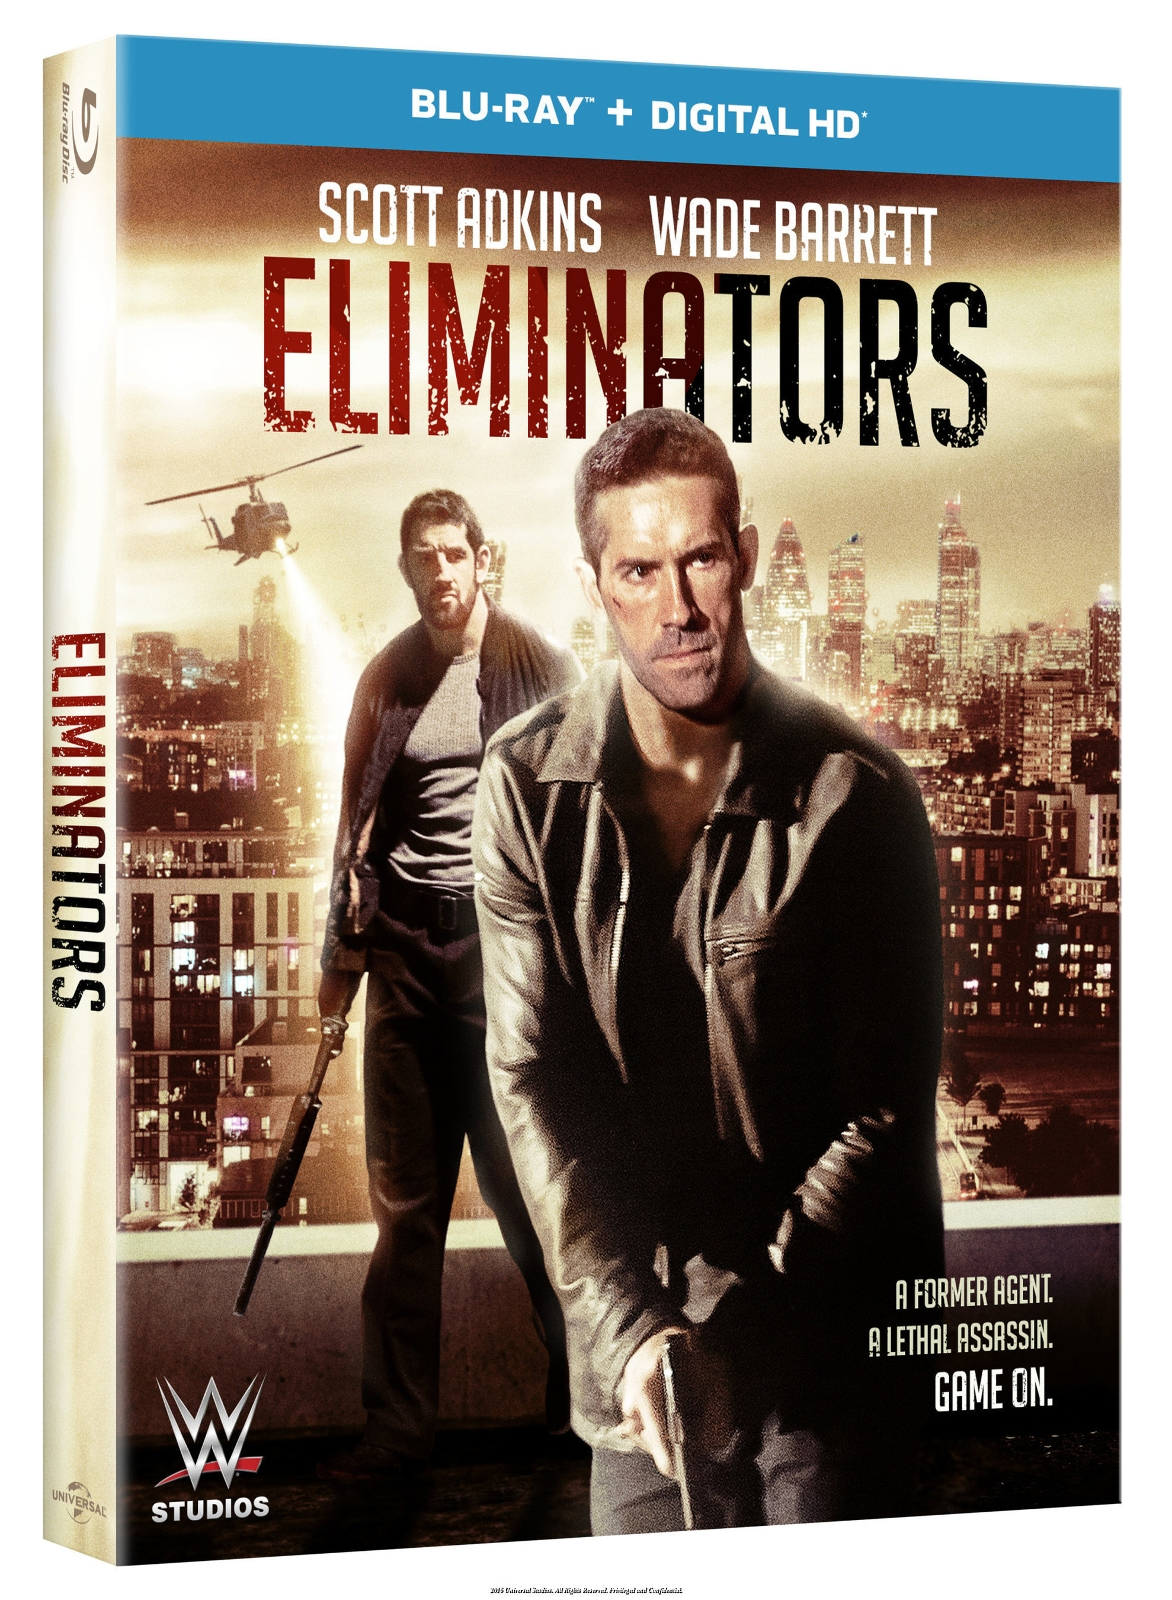 Eliminators Blu-ray Review